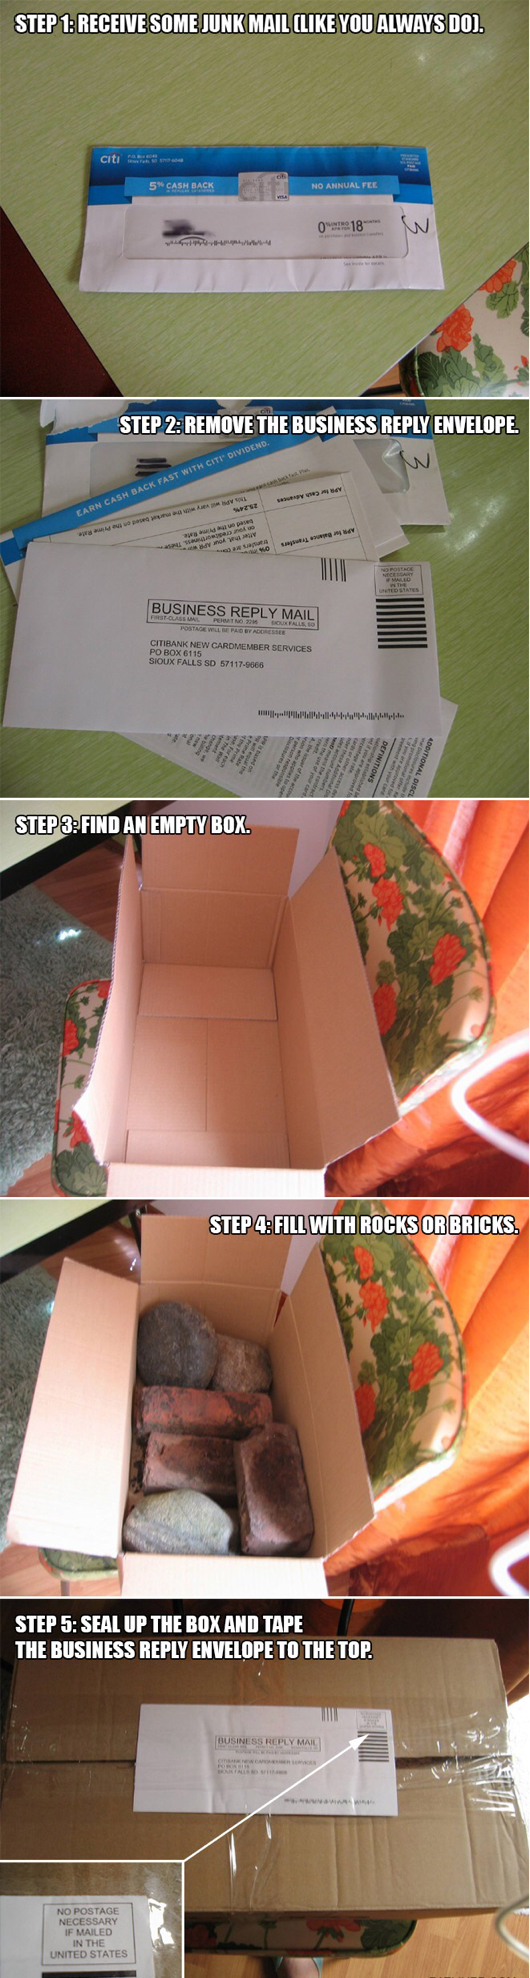 How To Deal With Junk Mail. Must try